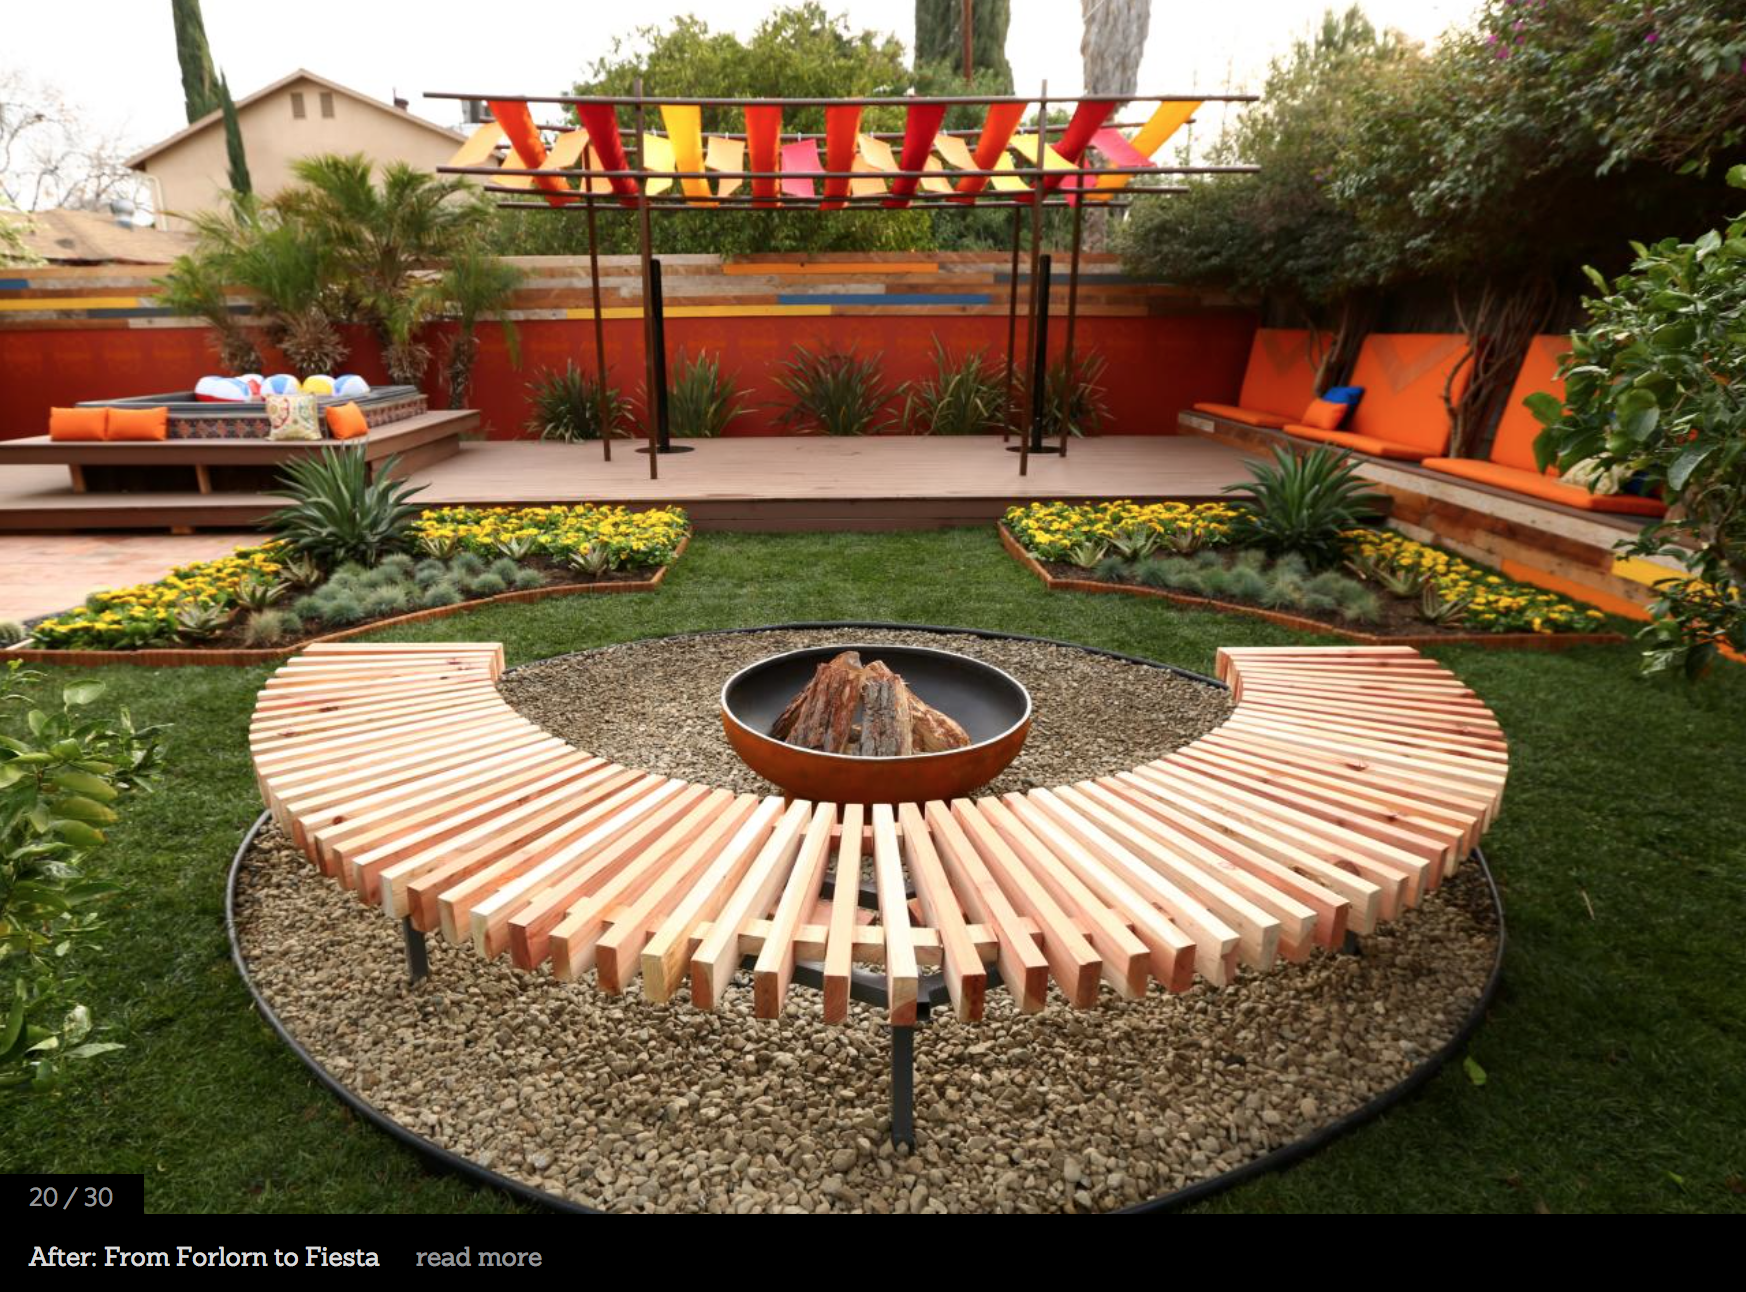 Fire Pit On Contained Pebble Circular Space With Semi Circle Slated Bench Backyard Seating Diy Backyard Budget Backyard